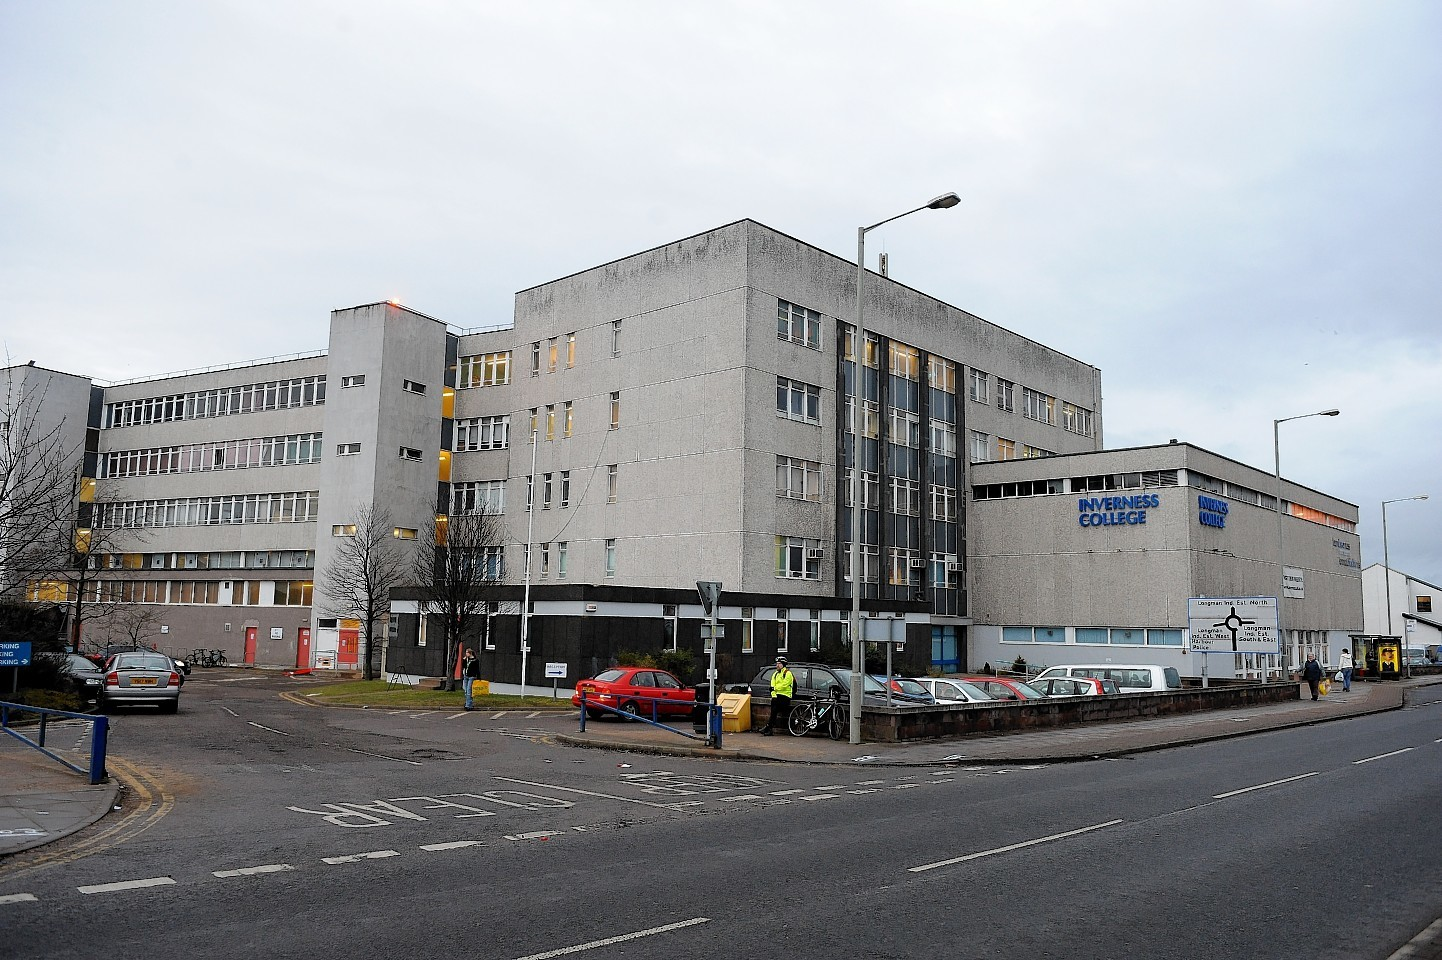 The former Inverness College on Longman Road